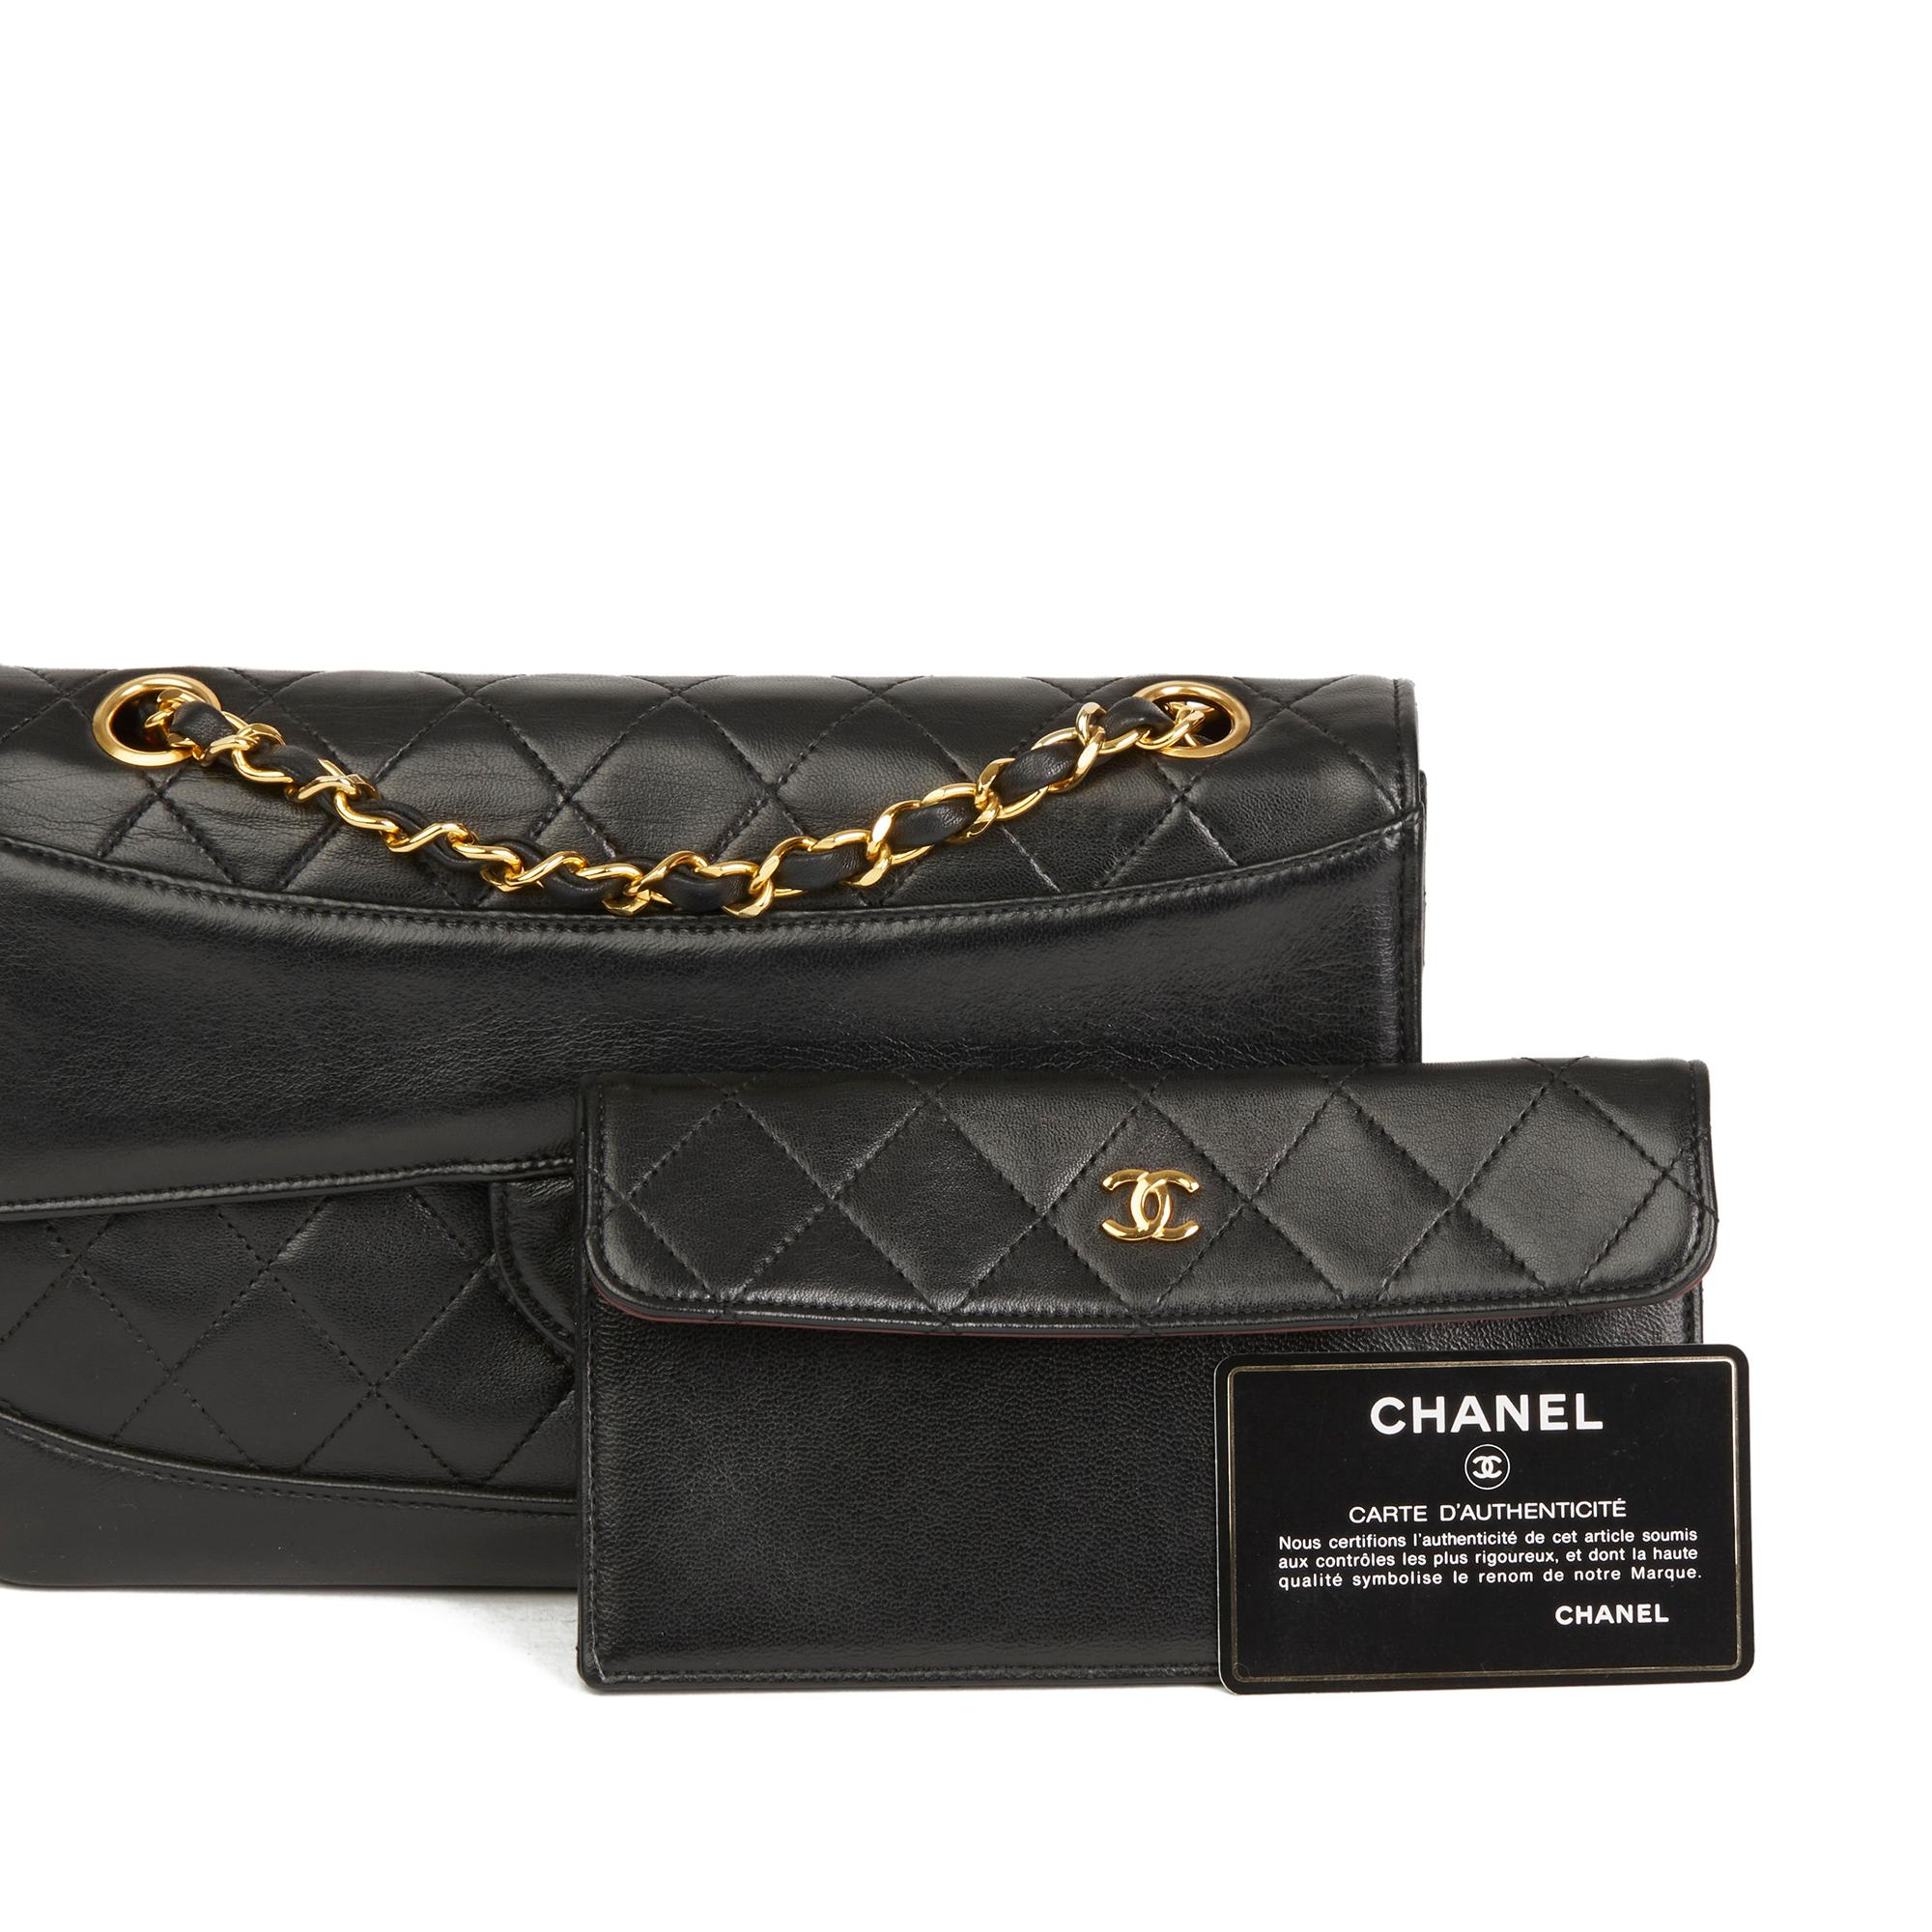 67d9416d015b5e 1990 Chanel Black Quilted Lambskin Vintage Classic Single Flap Bag with  Wallet at 1stdibs